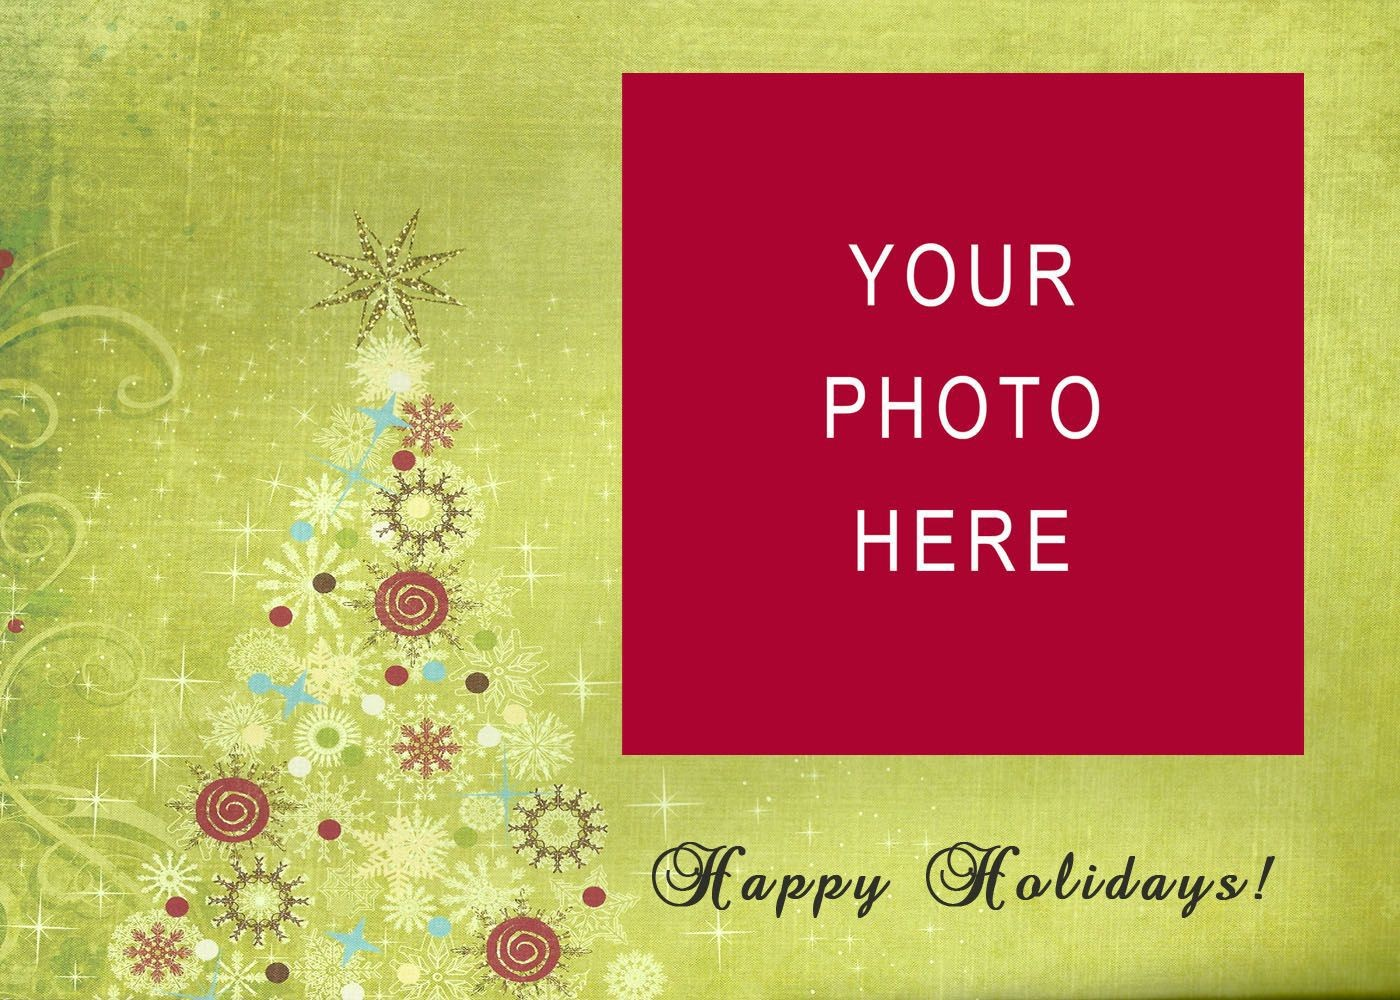 005 Amazing Free Download Holiday Card Template Photo 1400